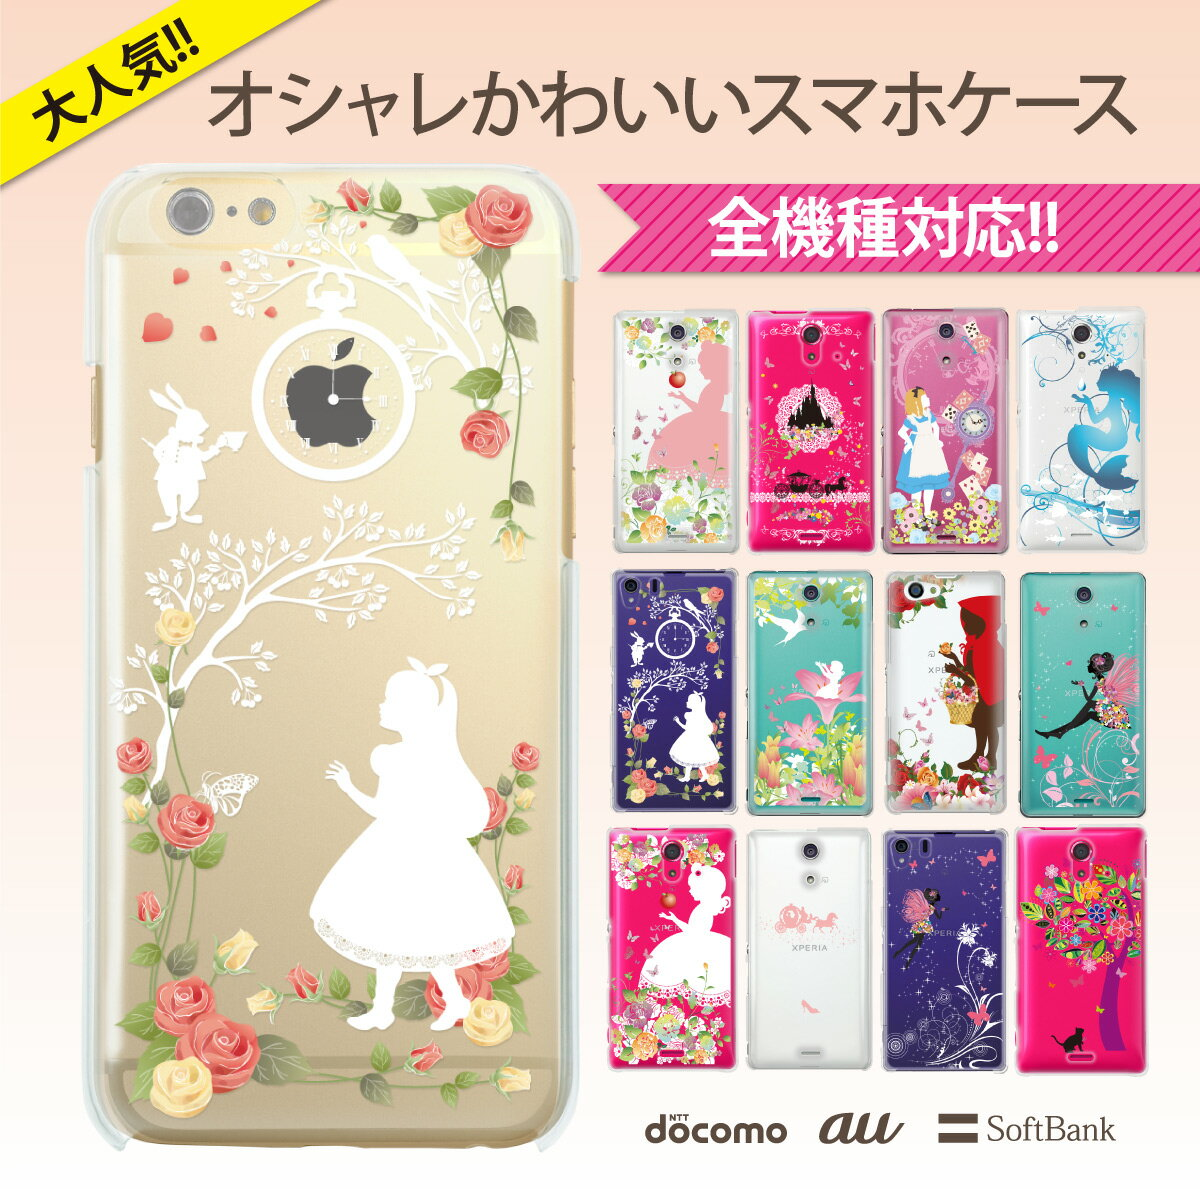 スマホケース クリア ケース クリアケース 全機種対応 iPhone8 iPhone7ケース iPhone7 iPhone6s iPhone6 Plus iPhone SE iPhone5s iphone5c Xperia XZ SO-01J X Performance SO-04H Z5 Z4 SO-02H SOV33 aquos SH-04H arrows kawaii-zen02